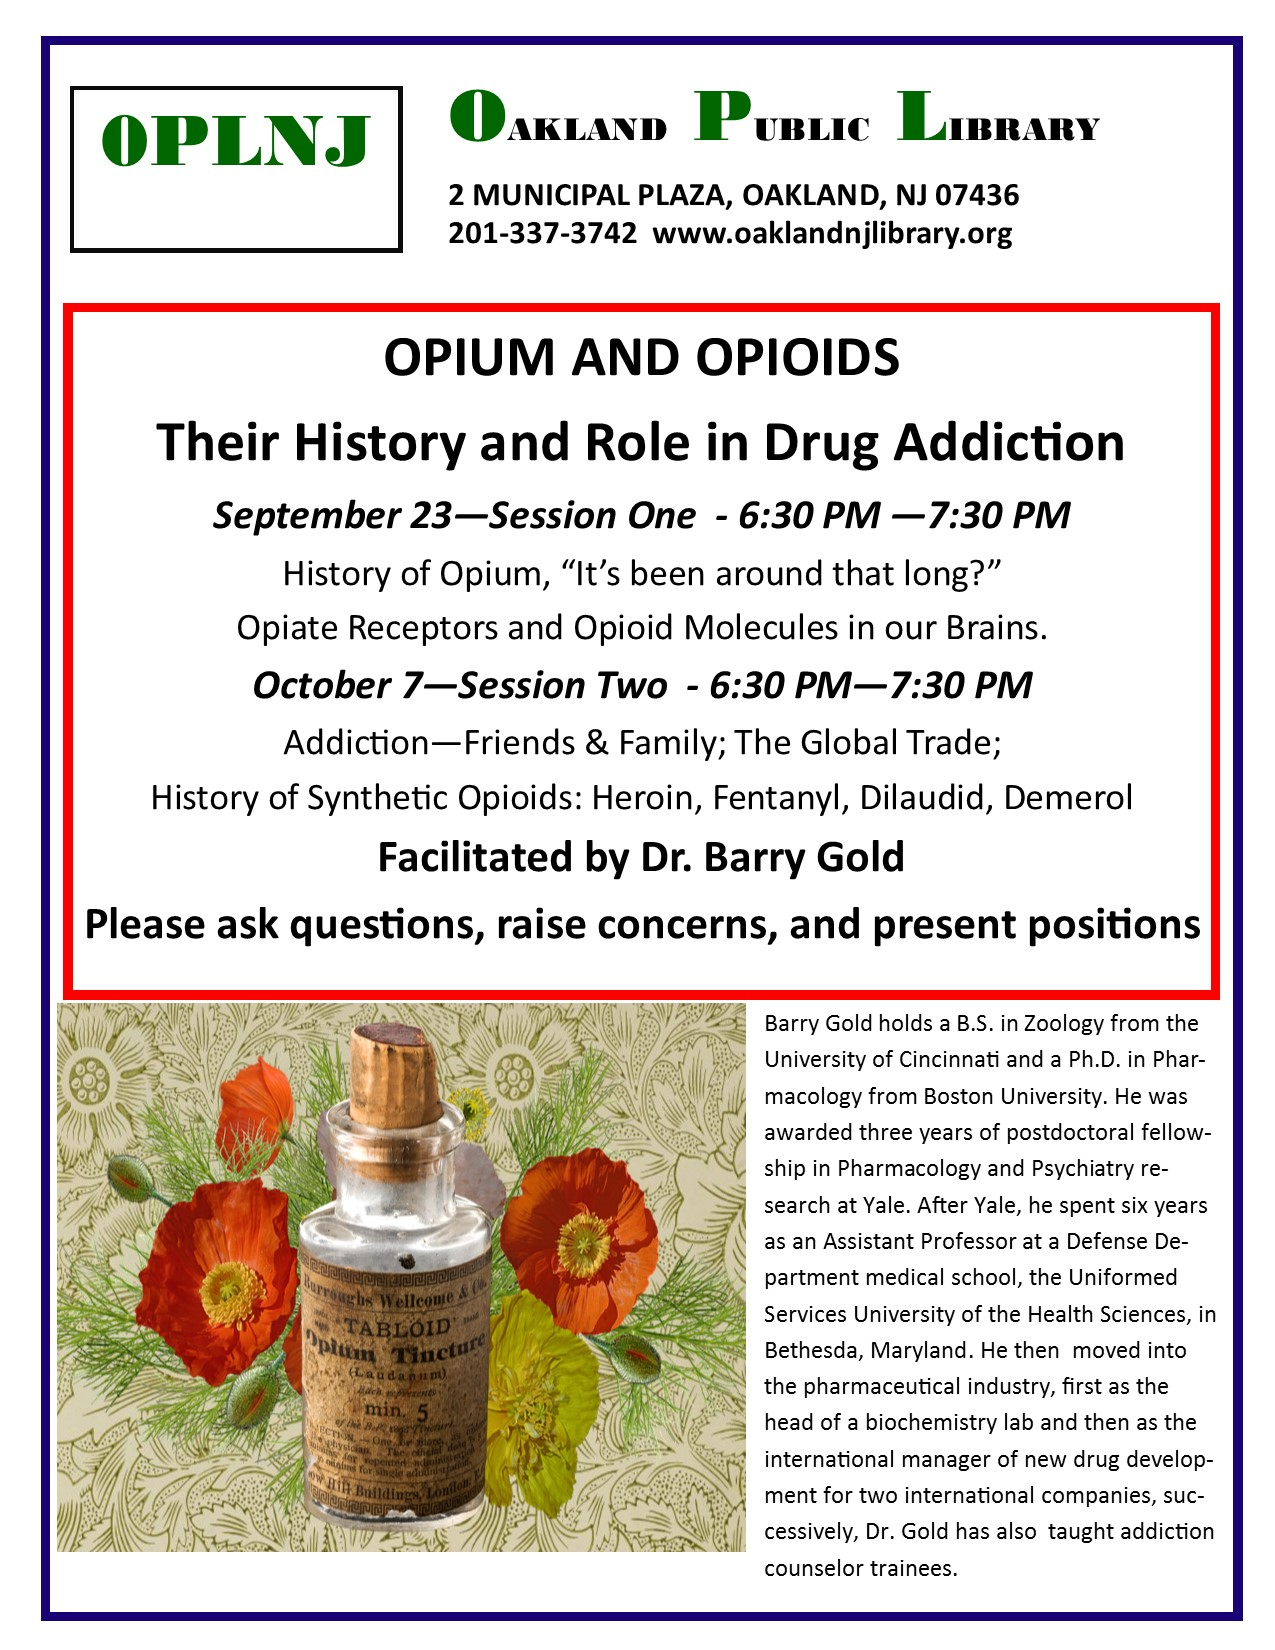 Opium and Opioids, Their History and Role in Drug Addiction. Session Two